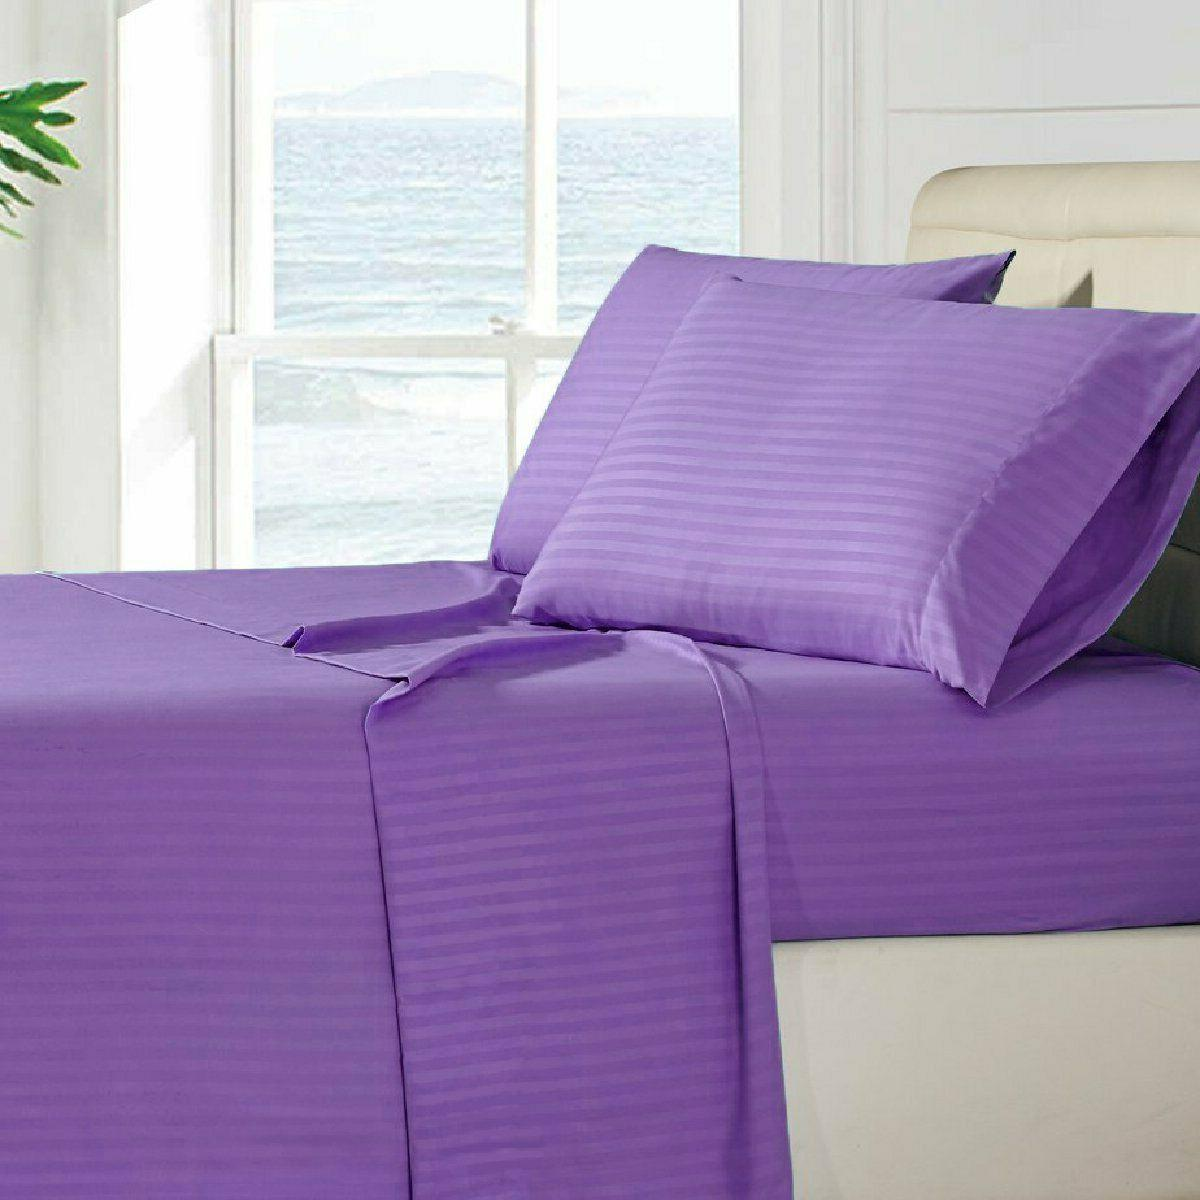 Luxury Ultra Soft 1800 Series Stripe Hotel Quality Bed Sheet